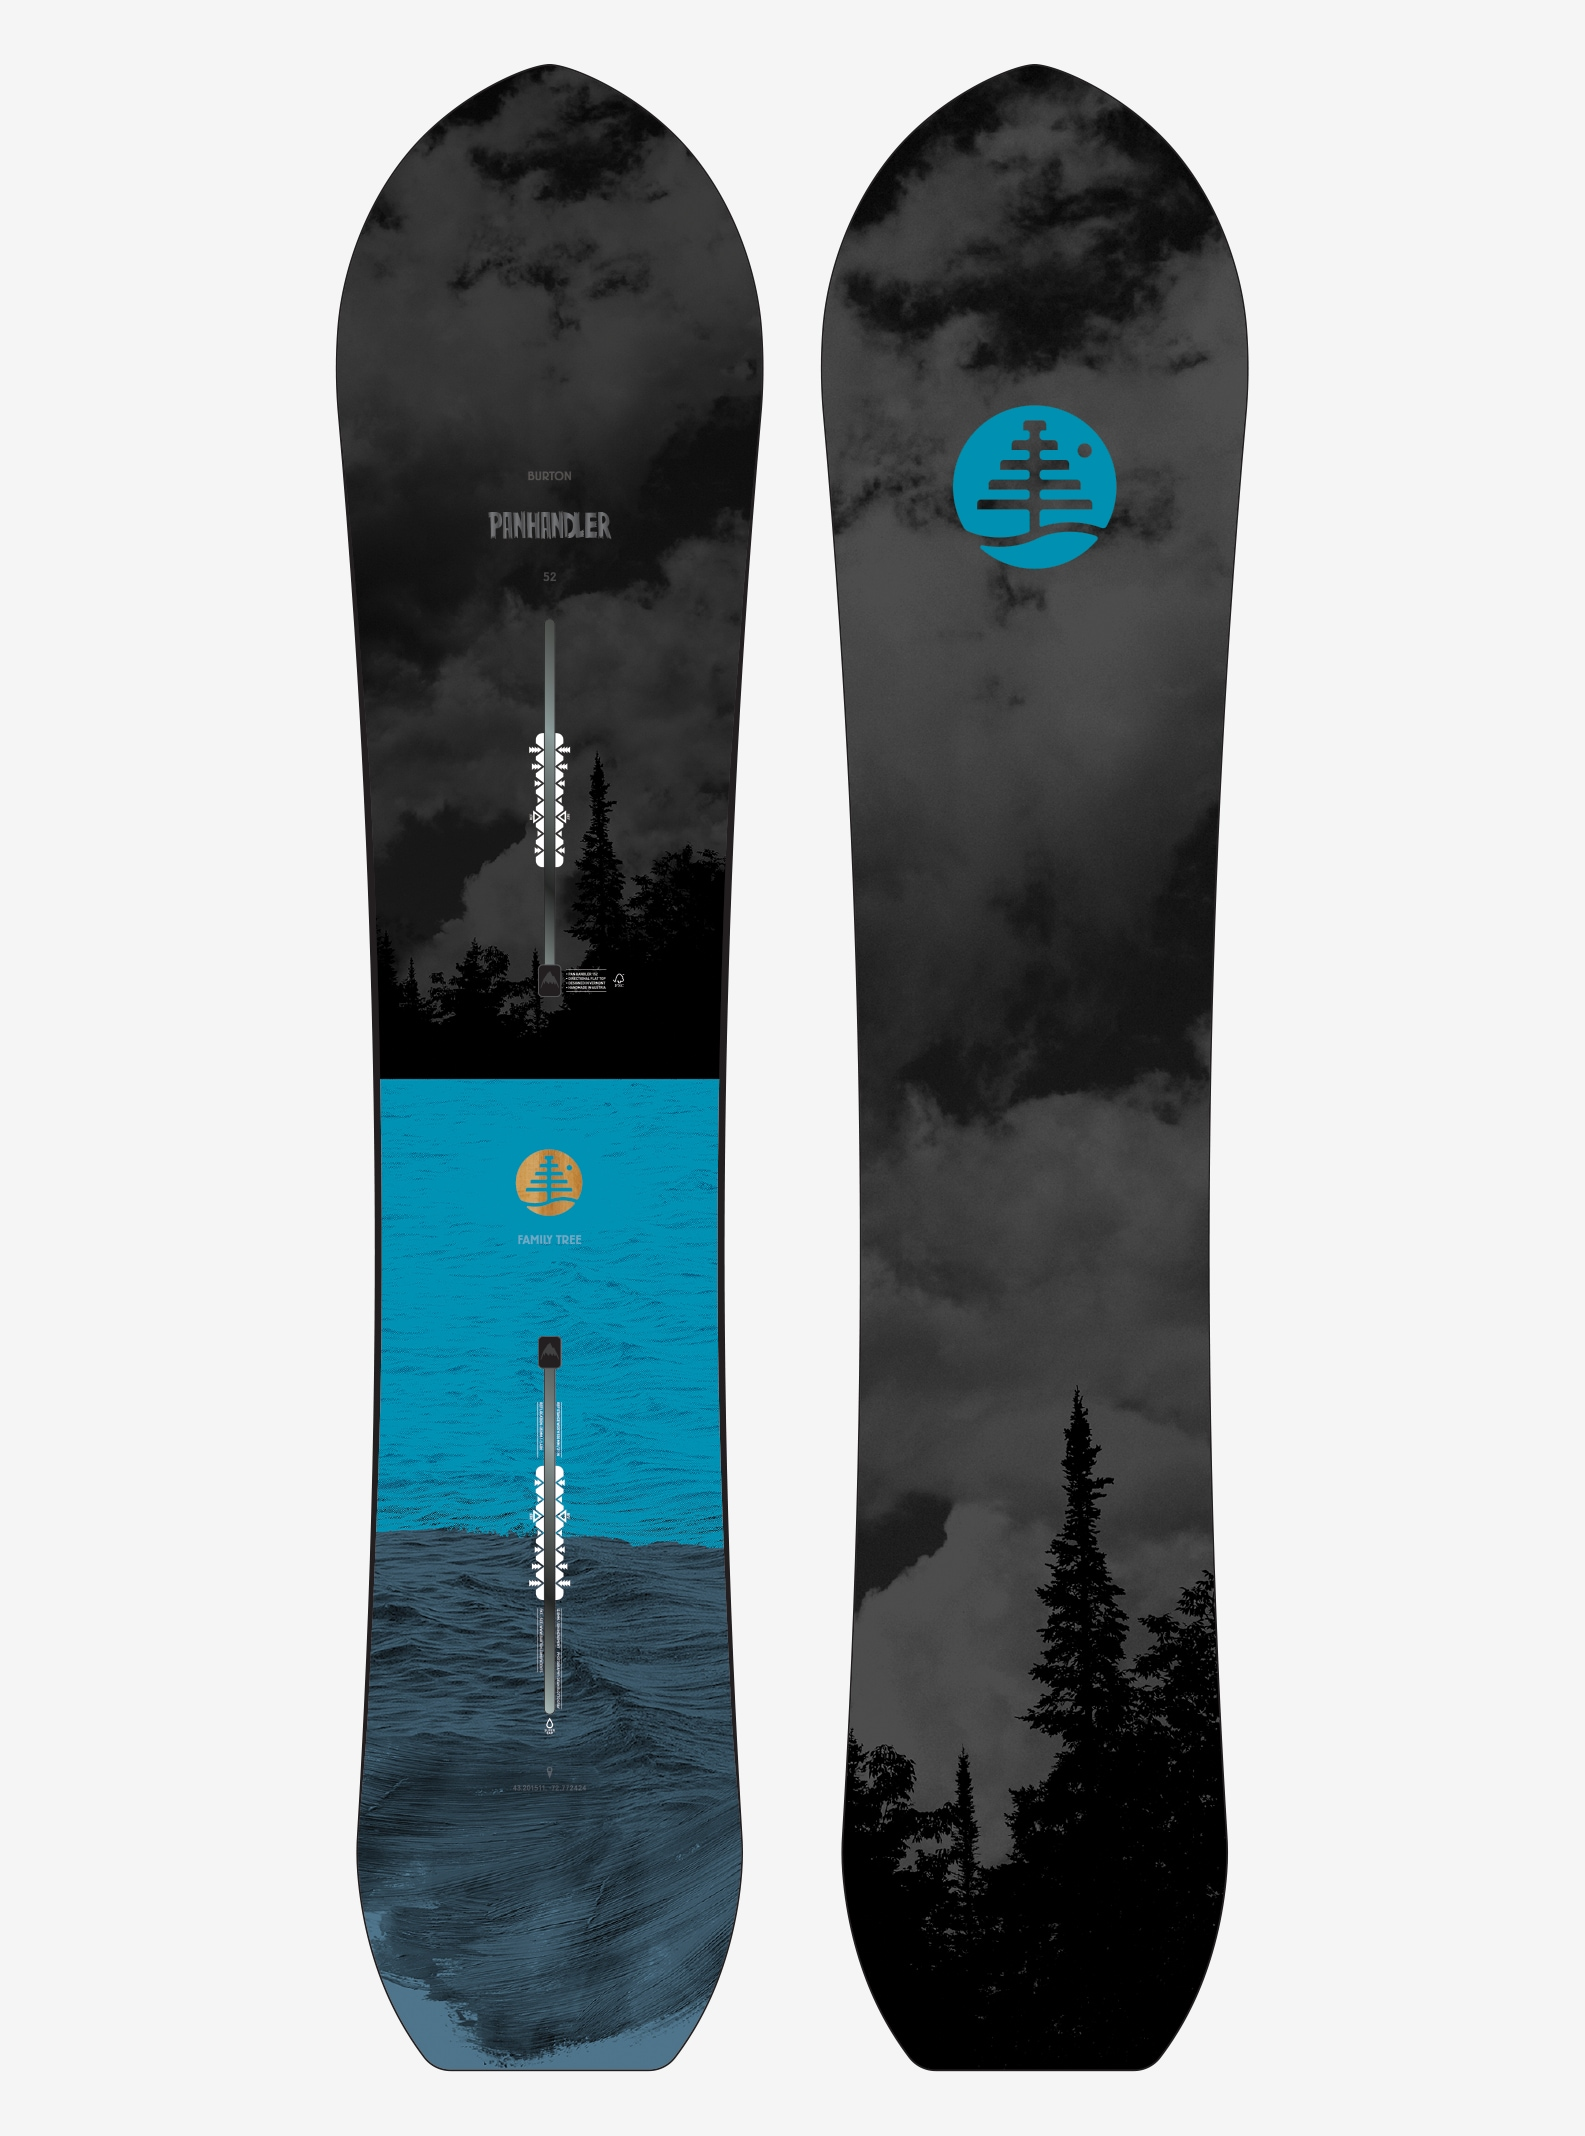 Men's Burton Family Tree Panhandler Snowboard shown in 152